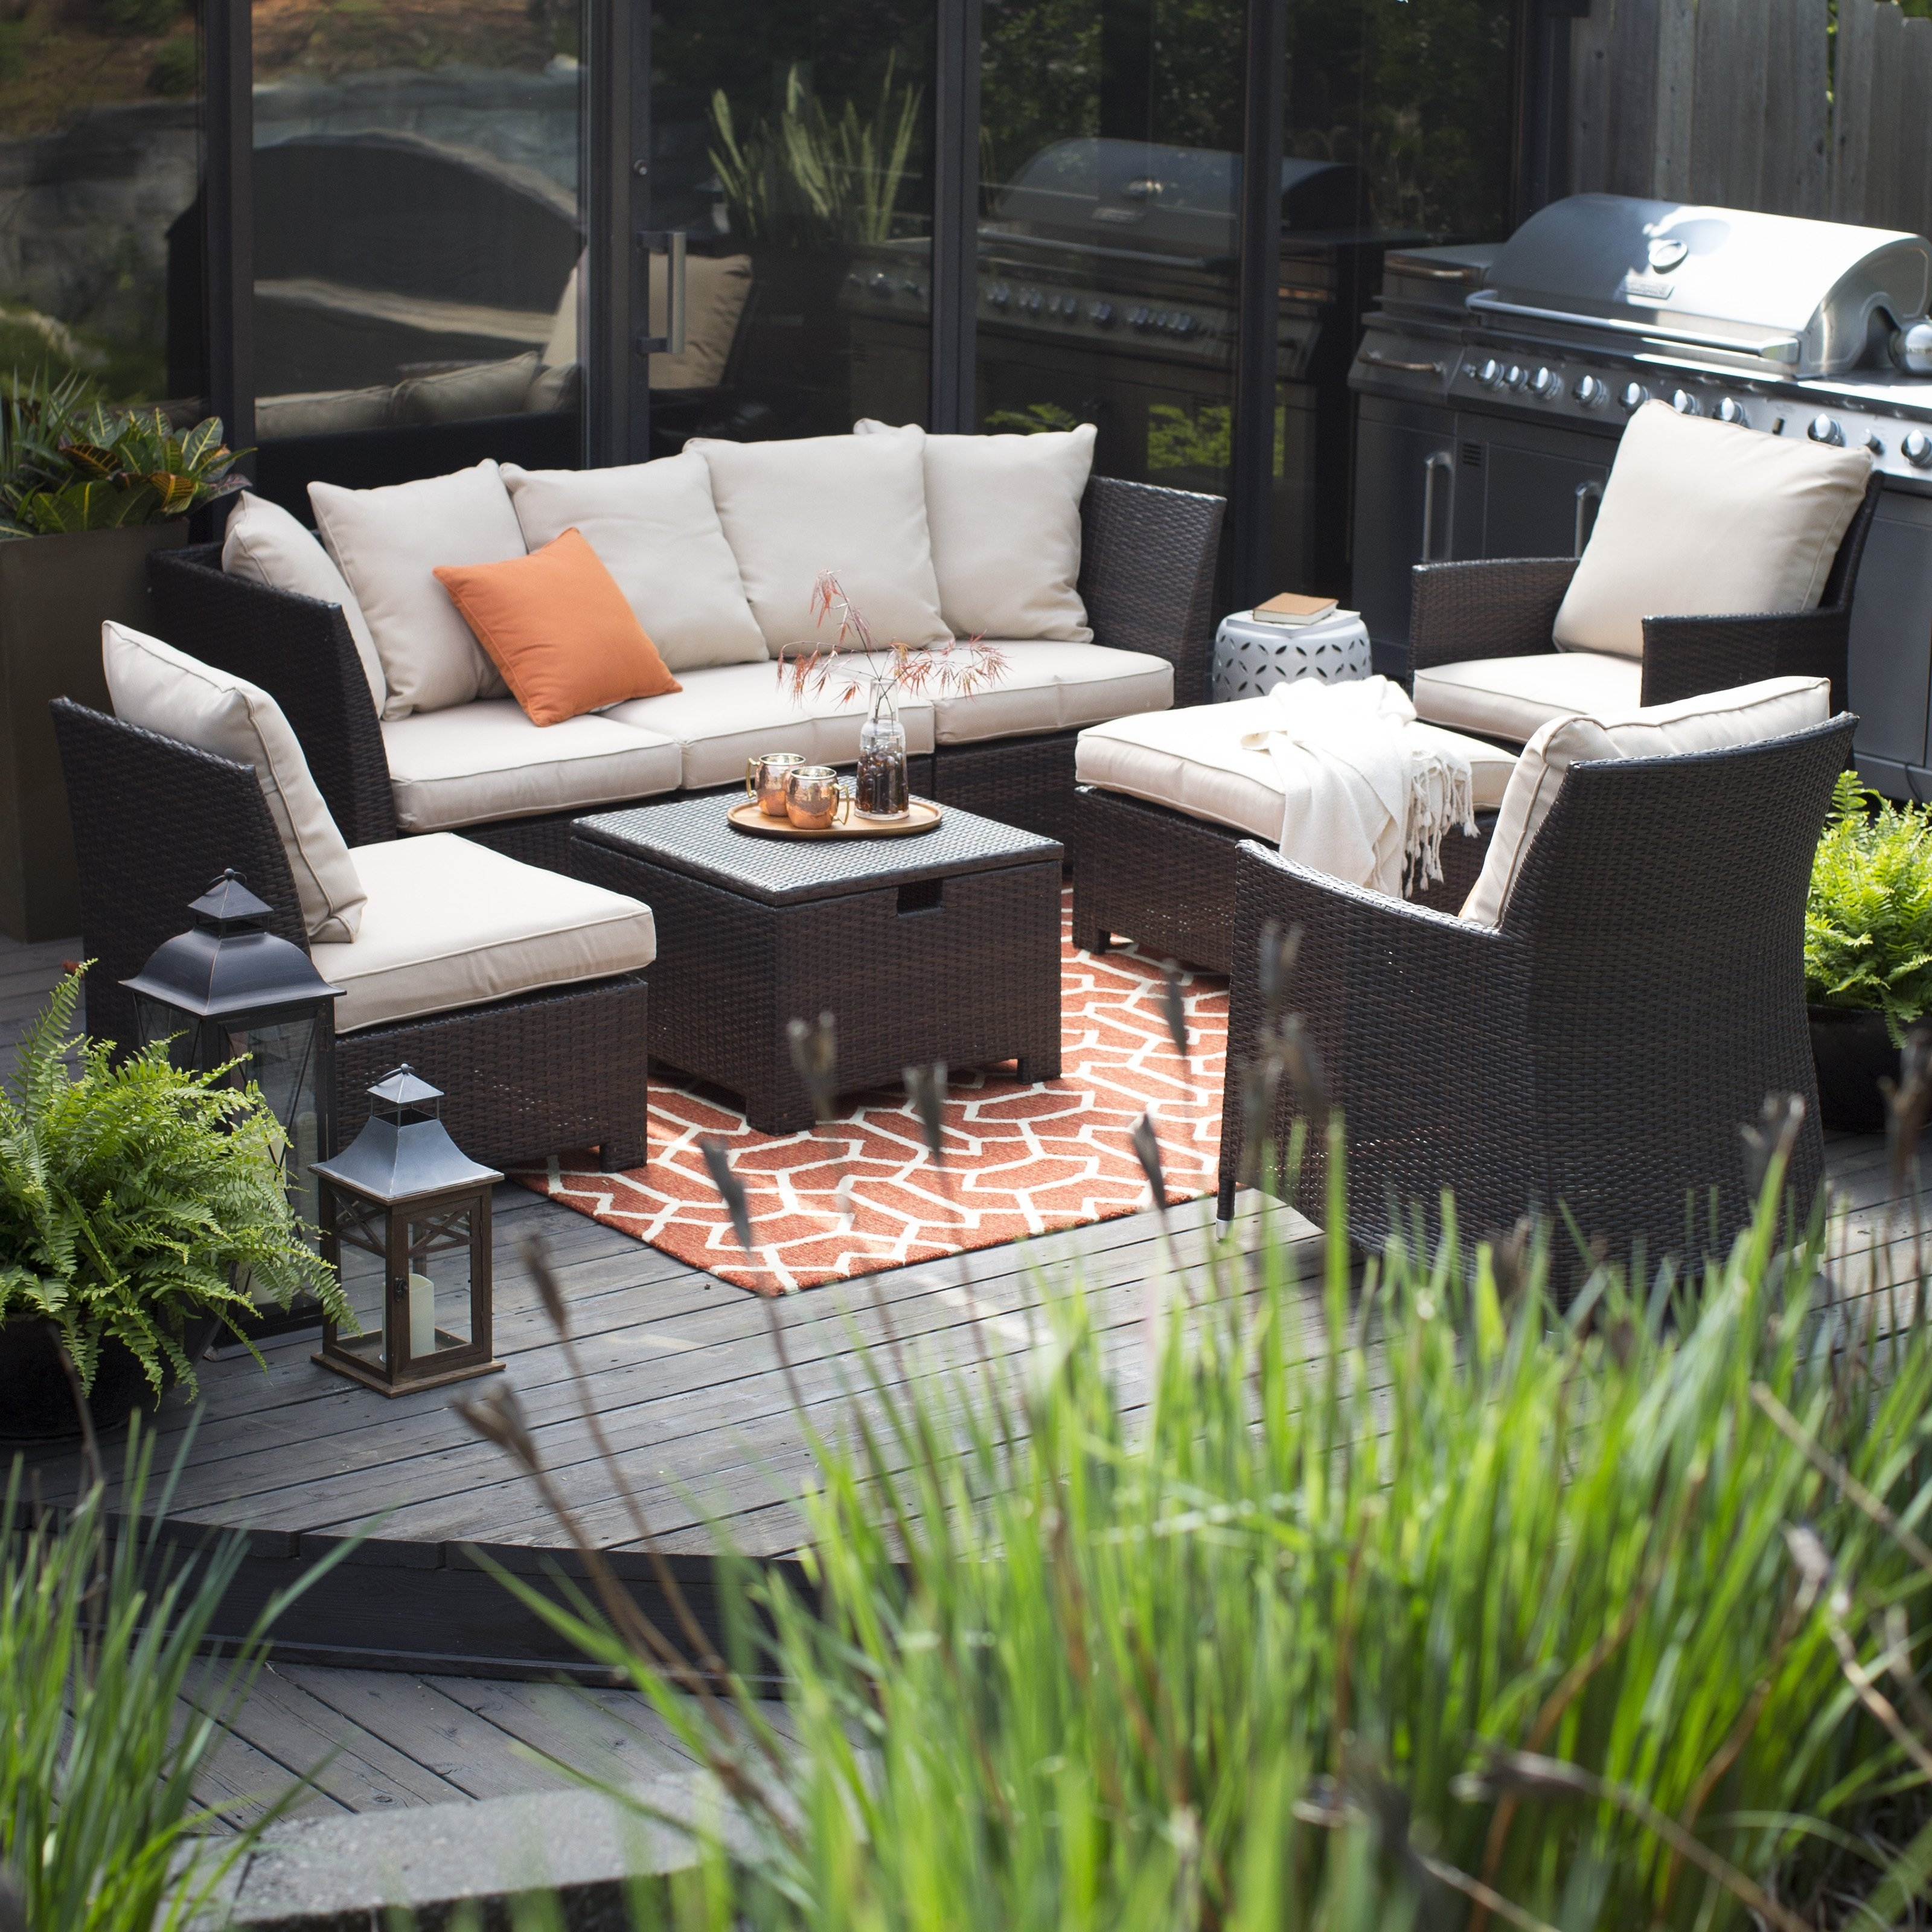 Preferred Furniture: Appealing Dark Wicker Sofa With White Cushions And Wicker With Patio Conversation Sets With Ottoman (View 15 of 20)